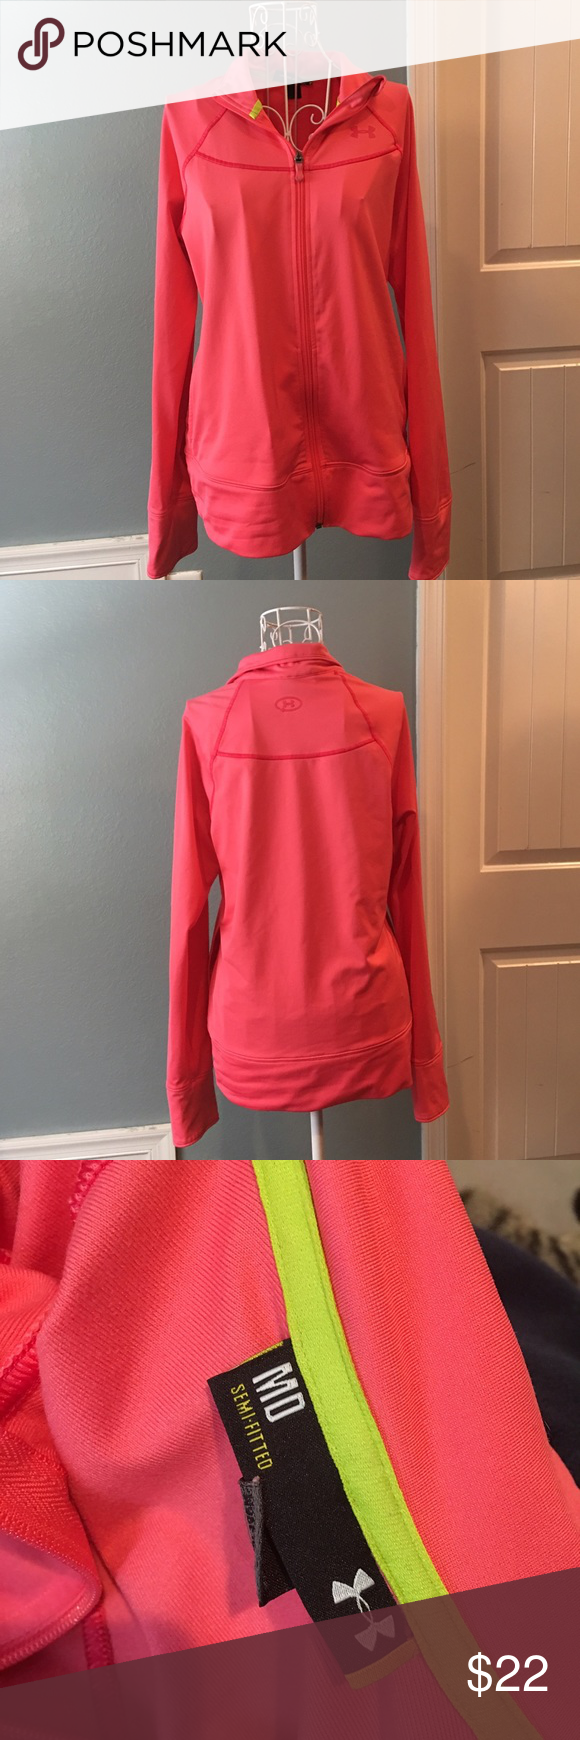 Under Armour Workout Jacket New condition! Size medium! No flaws Under Armour Jackets & Coats